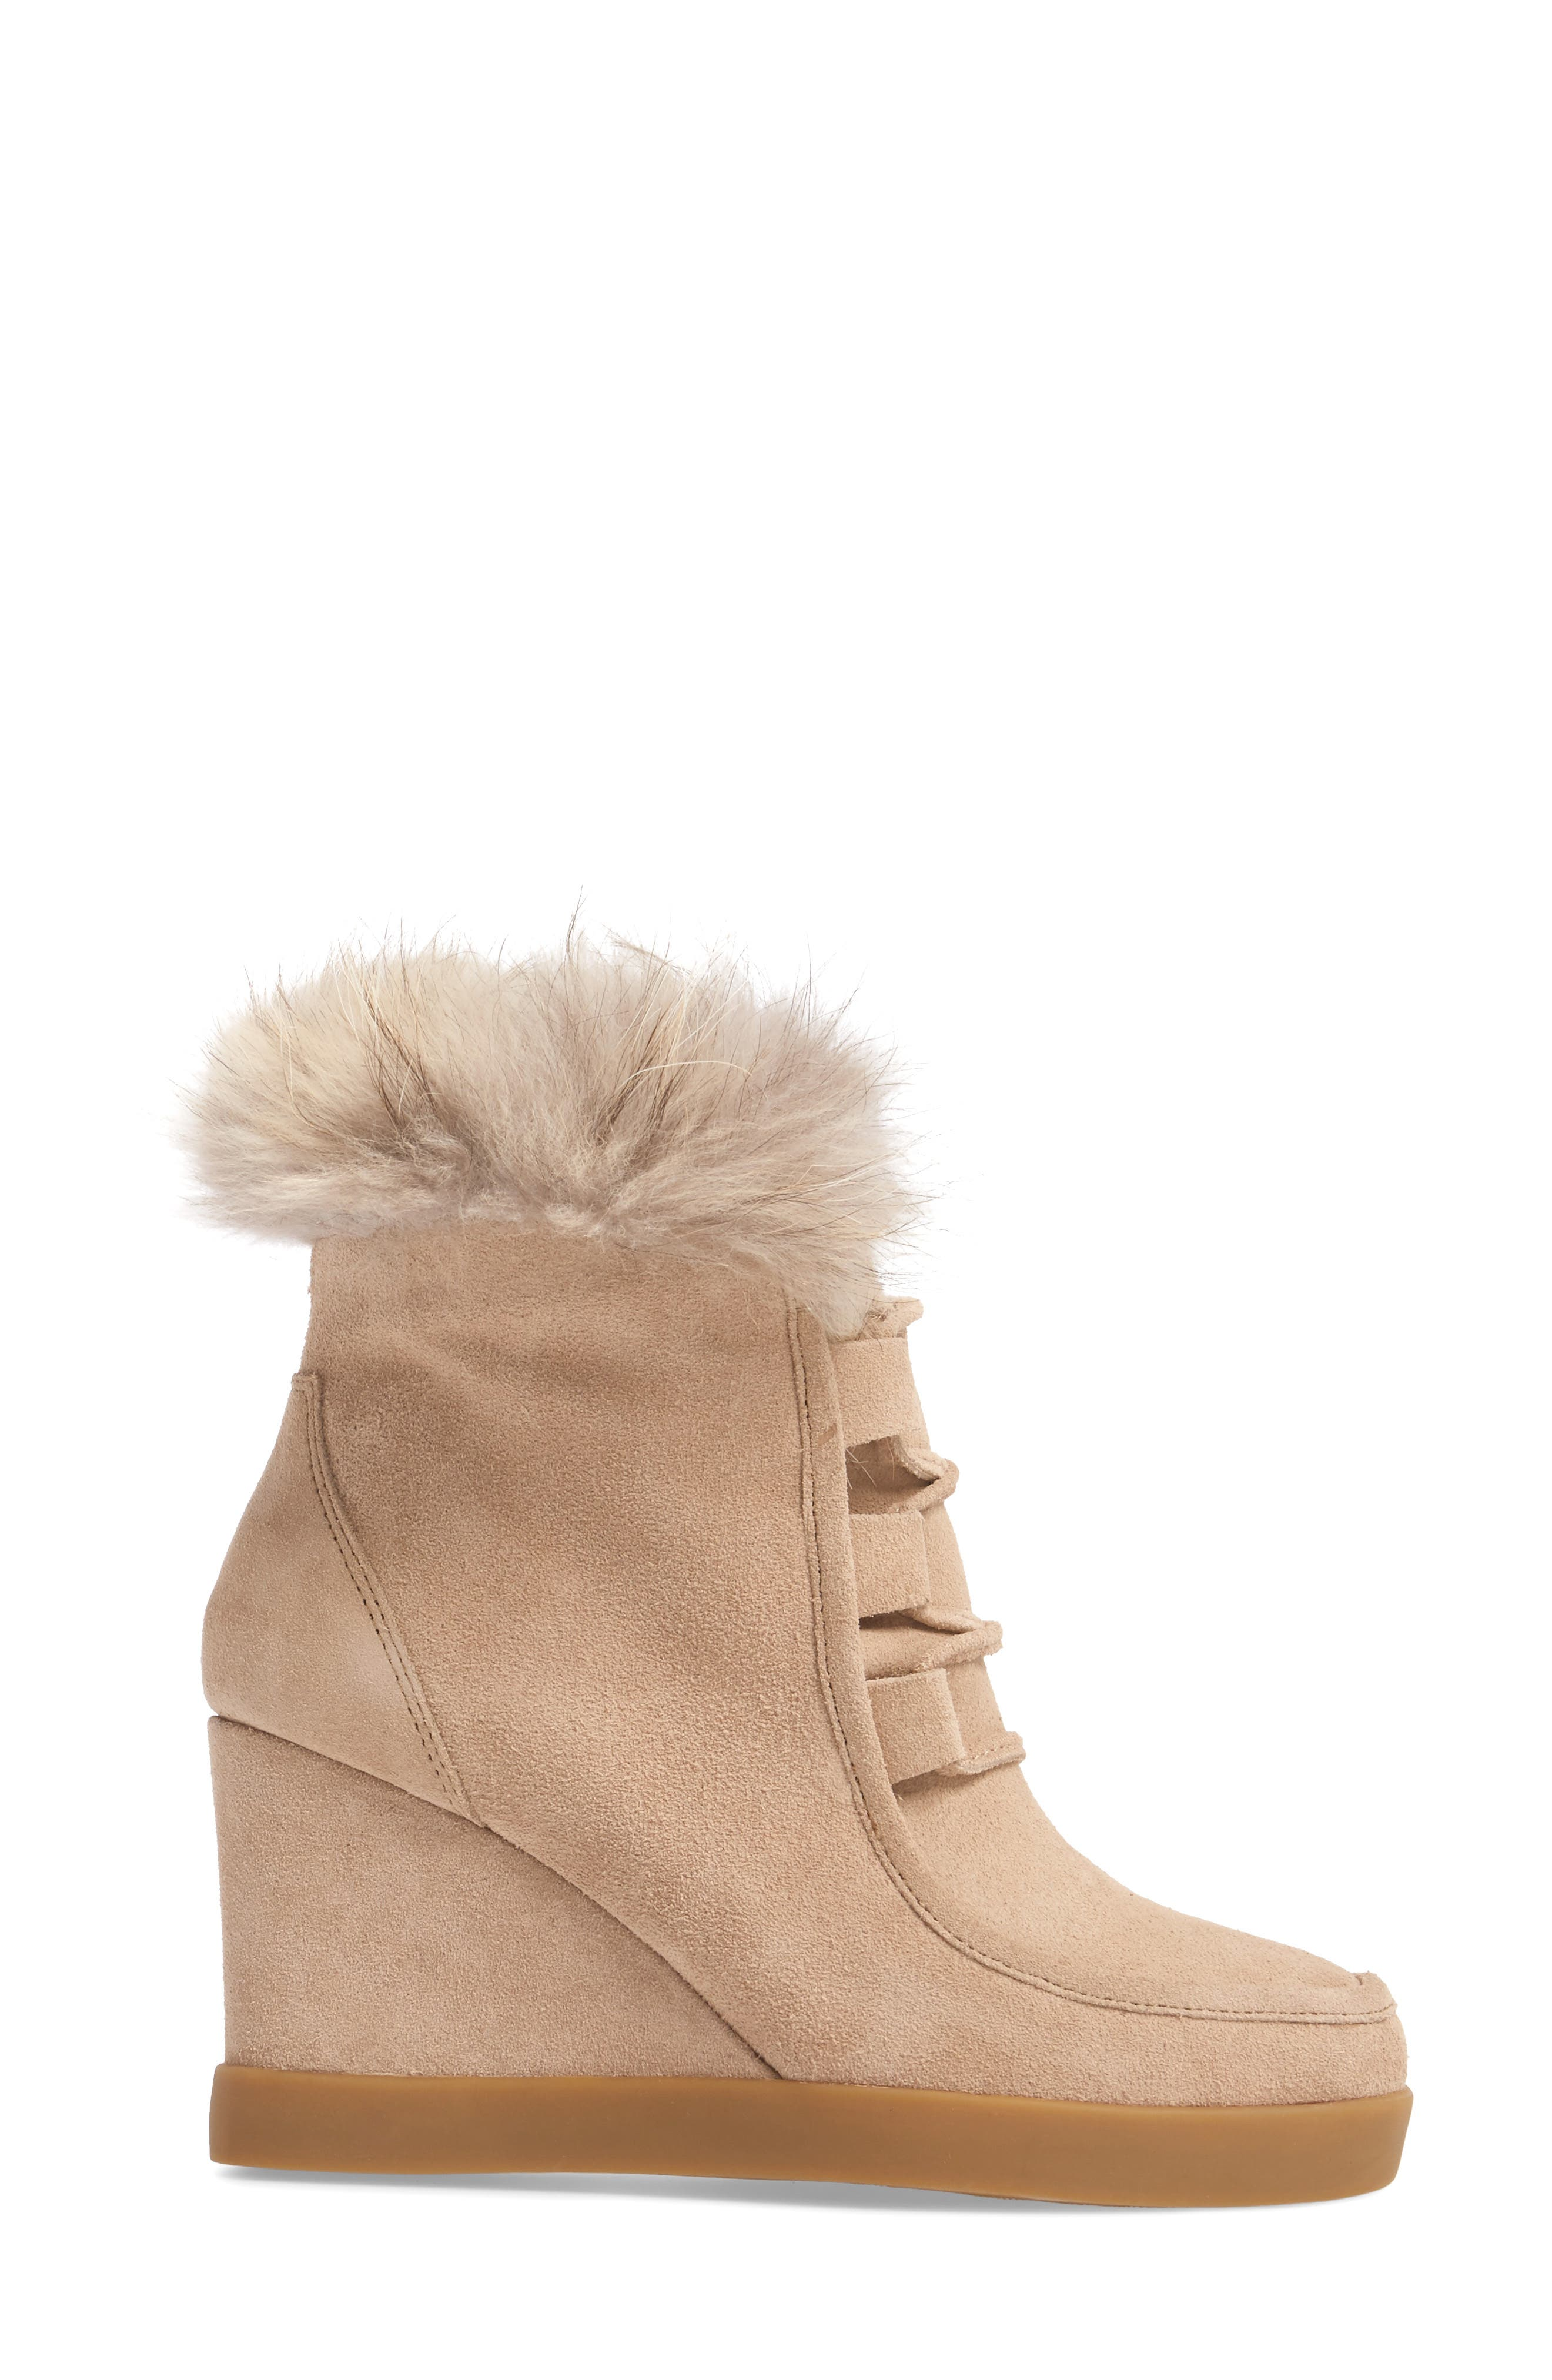 Holly Wedge Bootie with Genuine Fox Fur Trim,                             Alternate thumbnail 3, color,                             Natural Suede